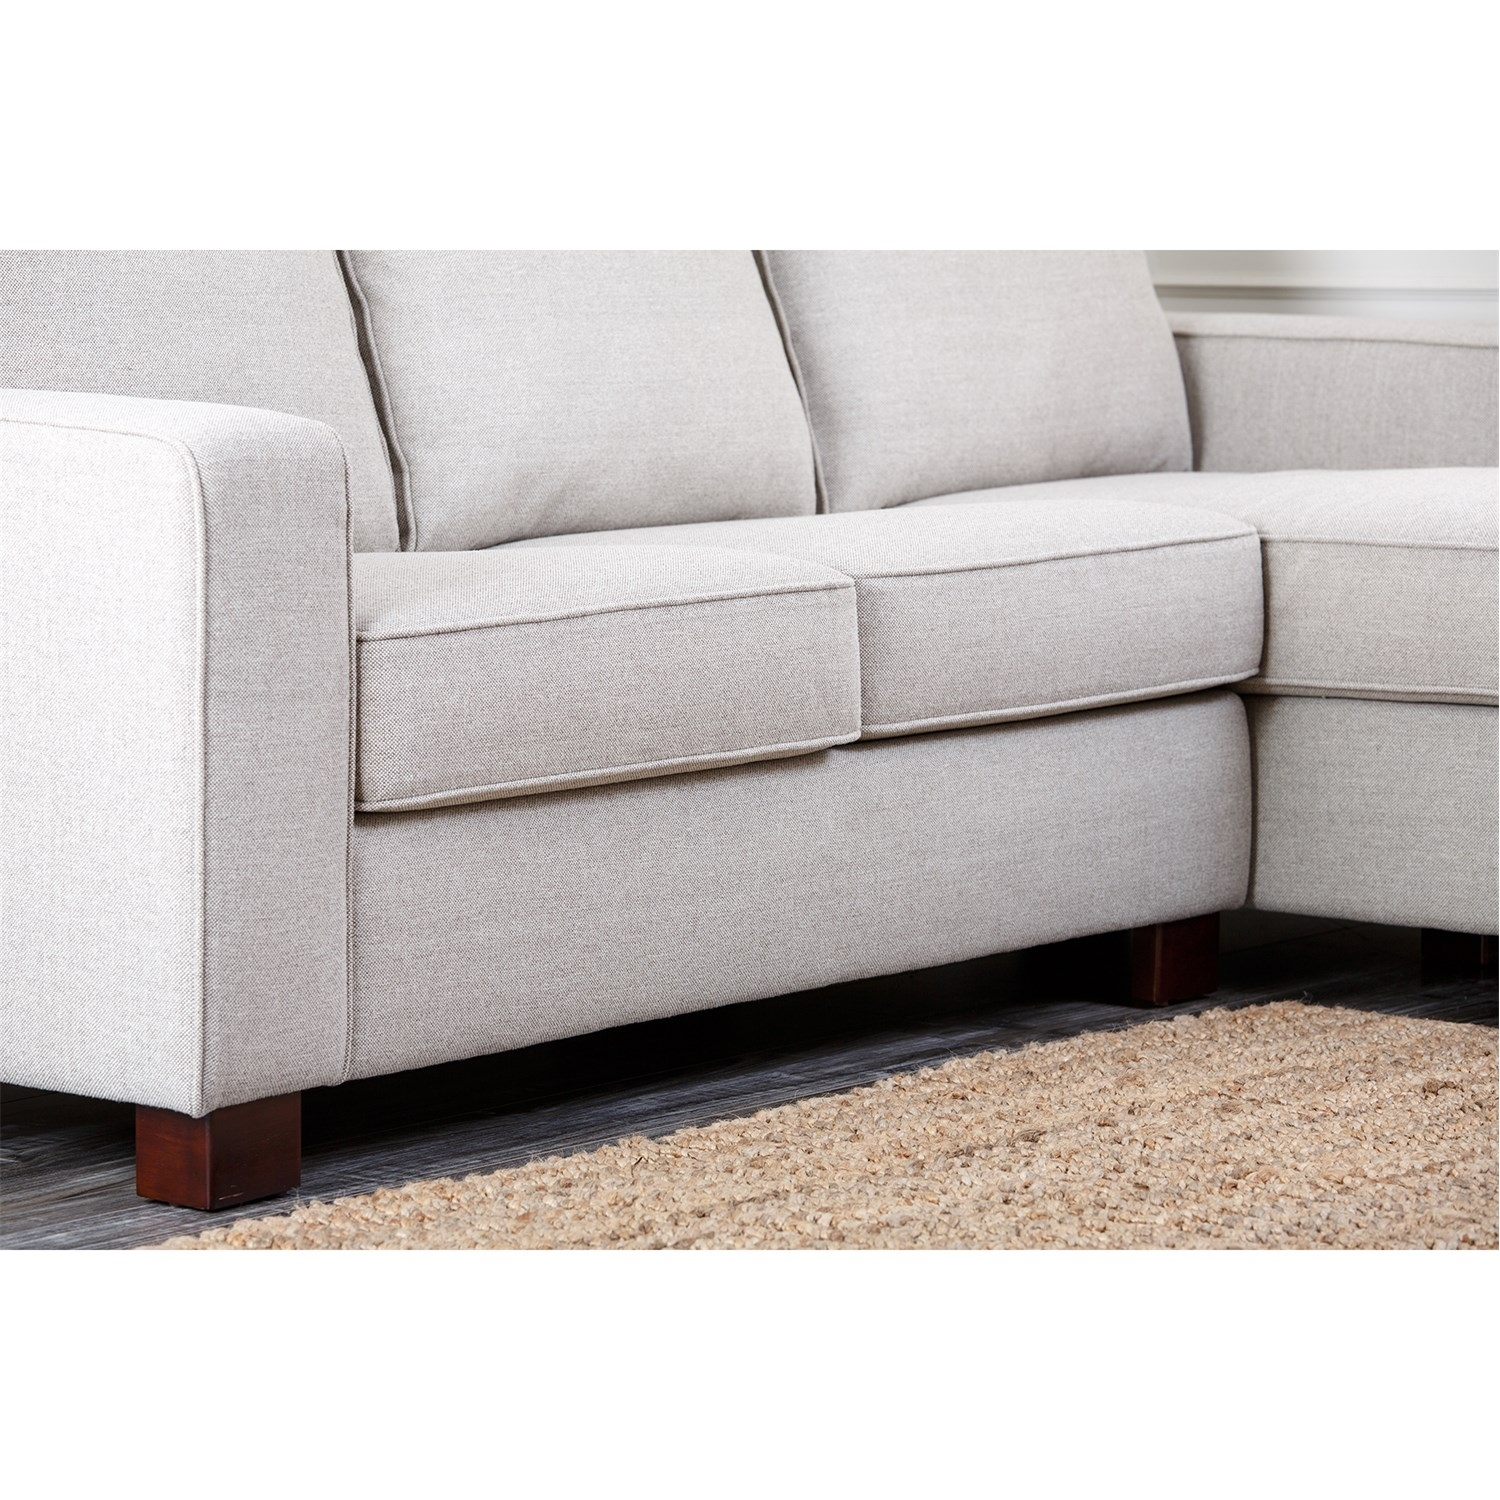 Abbyson Living Rl-1321-Gry Regina Grey Fabric Sectional Sofa intended for Regina Sectional Sofas (Image 2 of 10)